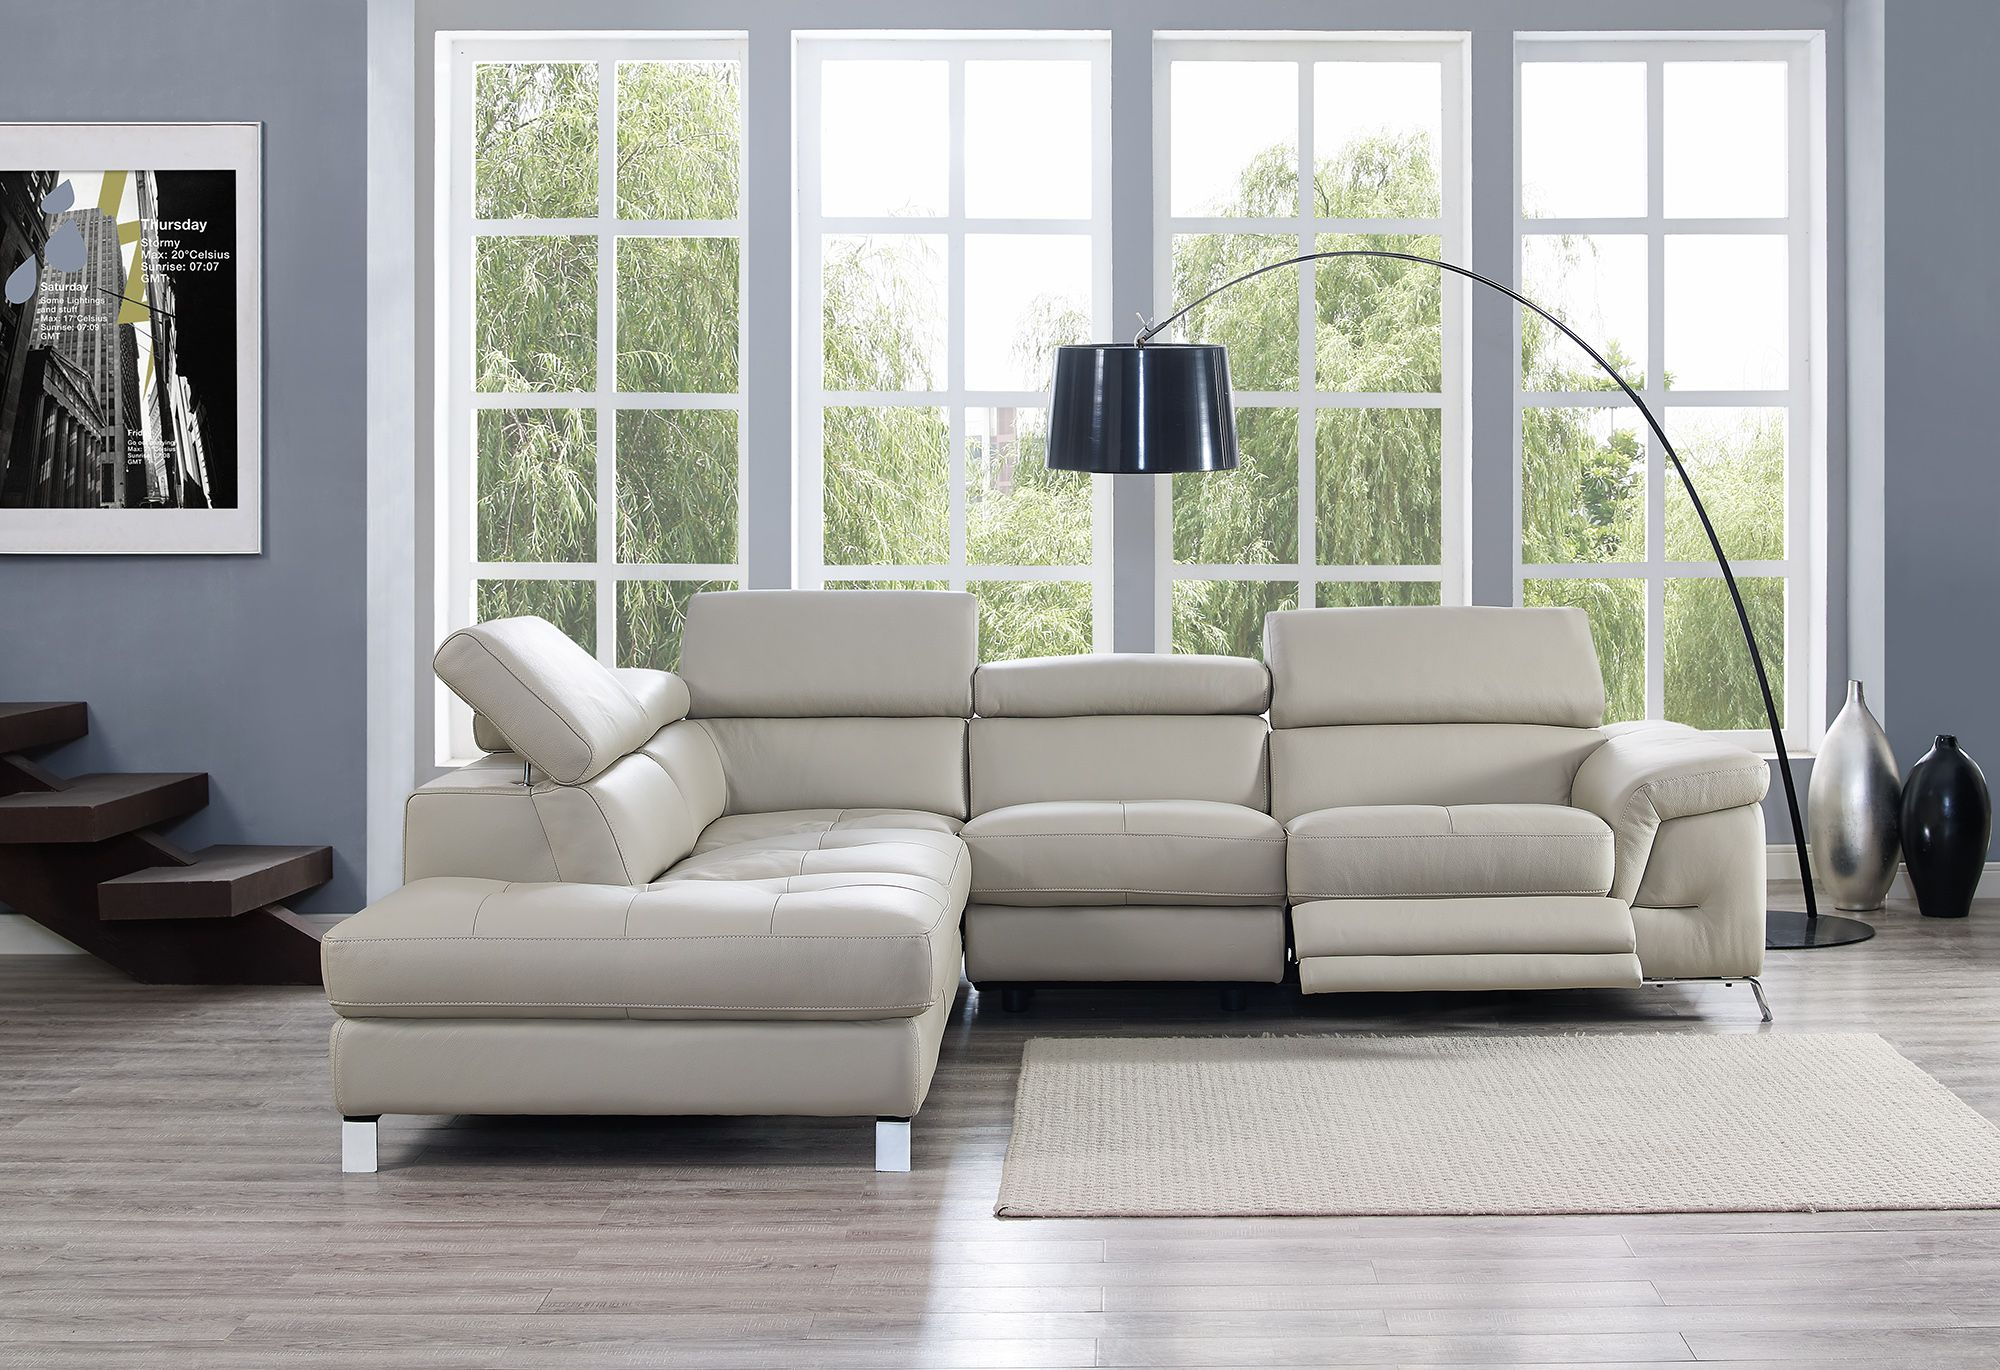 Elegant Furniture Italian Leather Upholstery Reclining Sectional Contemporary Leather Sectional Sofa Sectional